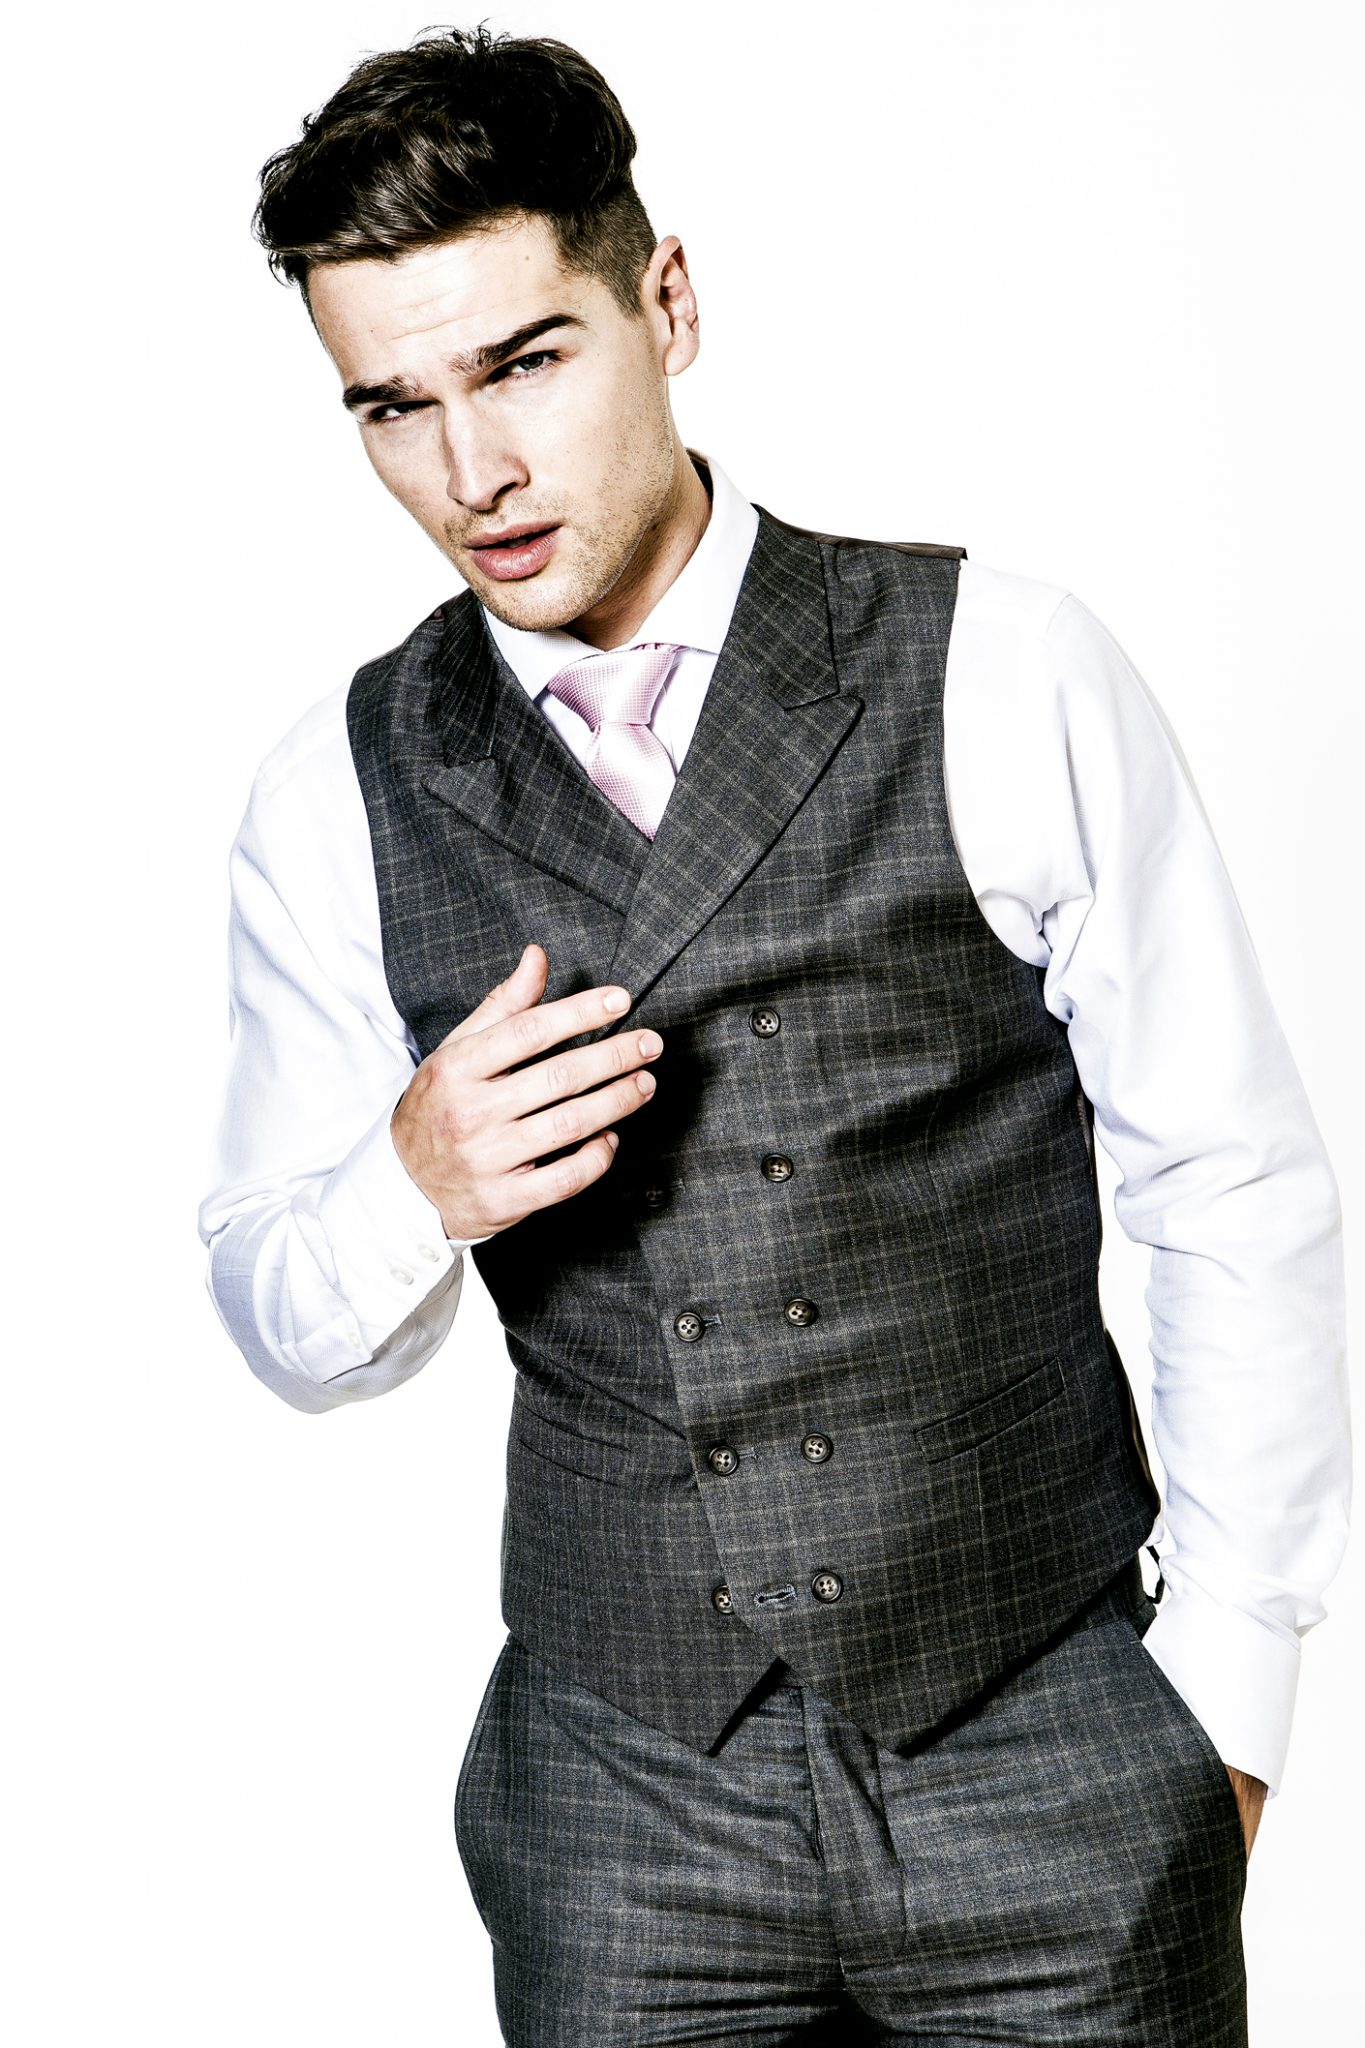 menswear-fashion-studio-photography-shot-in-manchester